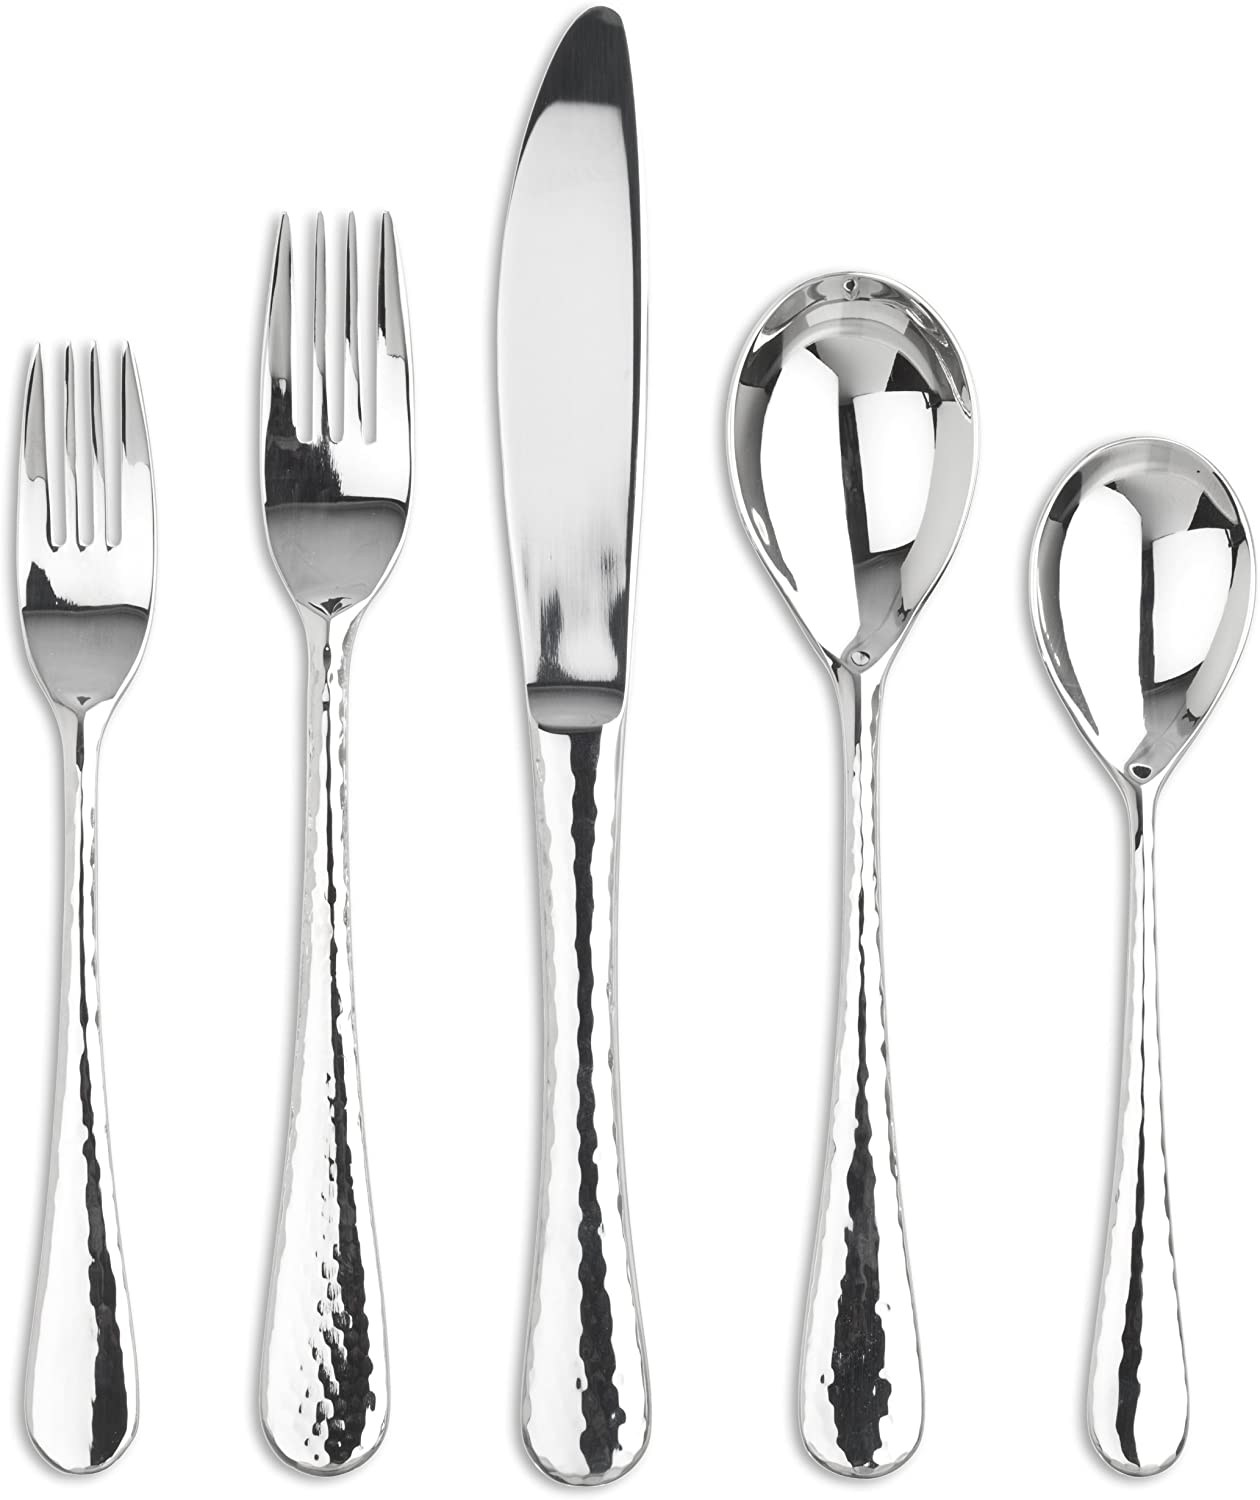 Ginkgo International Shimmer 20-Piece Stainless Steel Flatware Place Setting, Service for 4